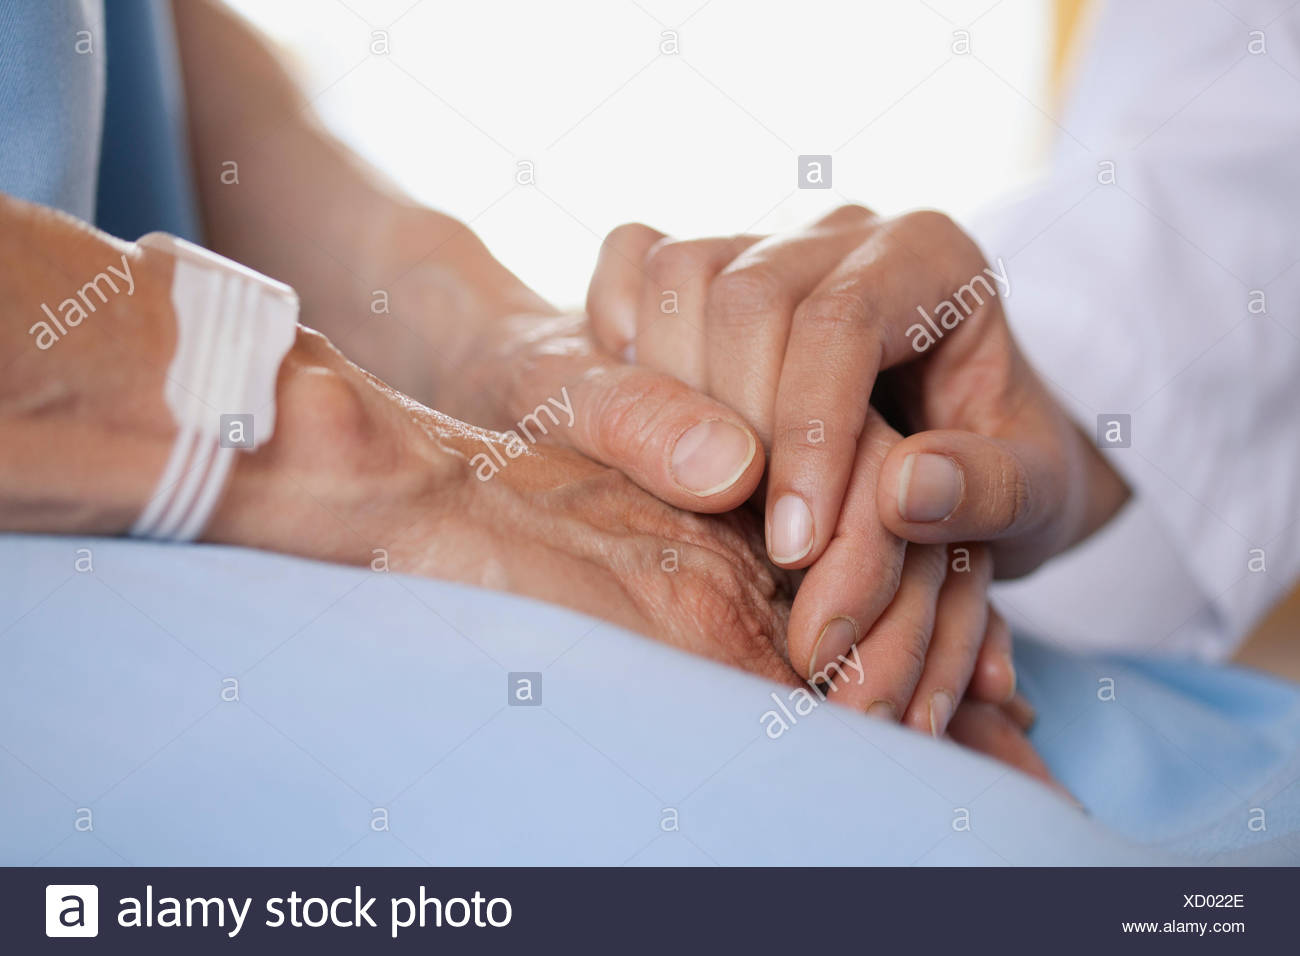 closeup of doctor holding patients hand - Stock Image